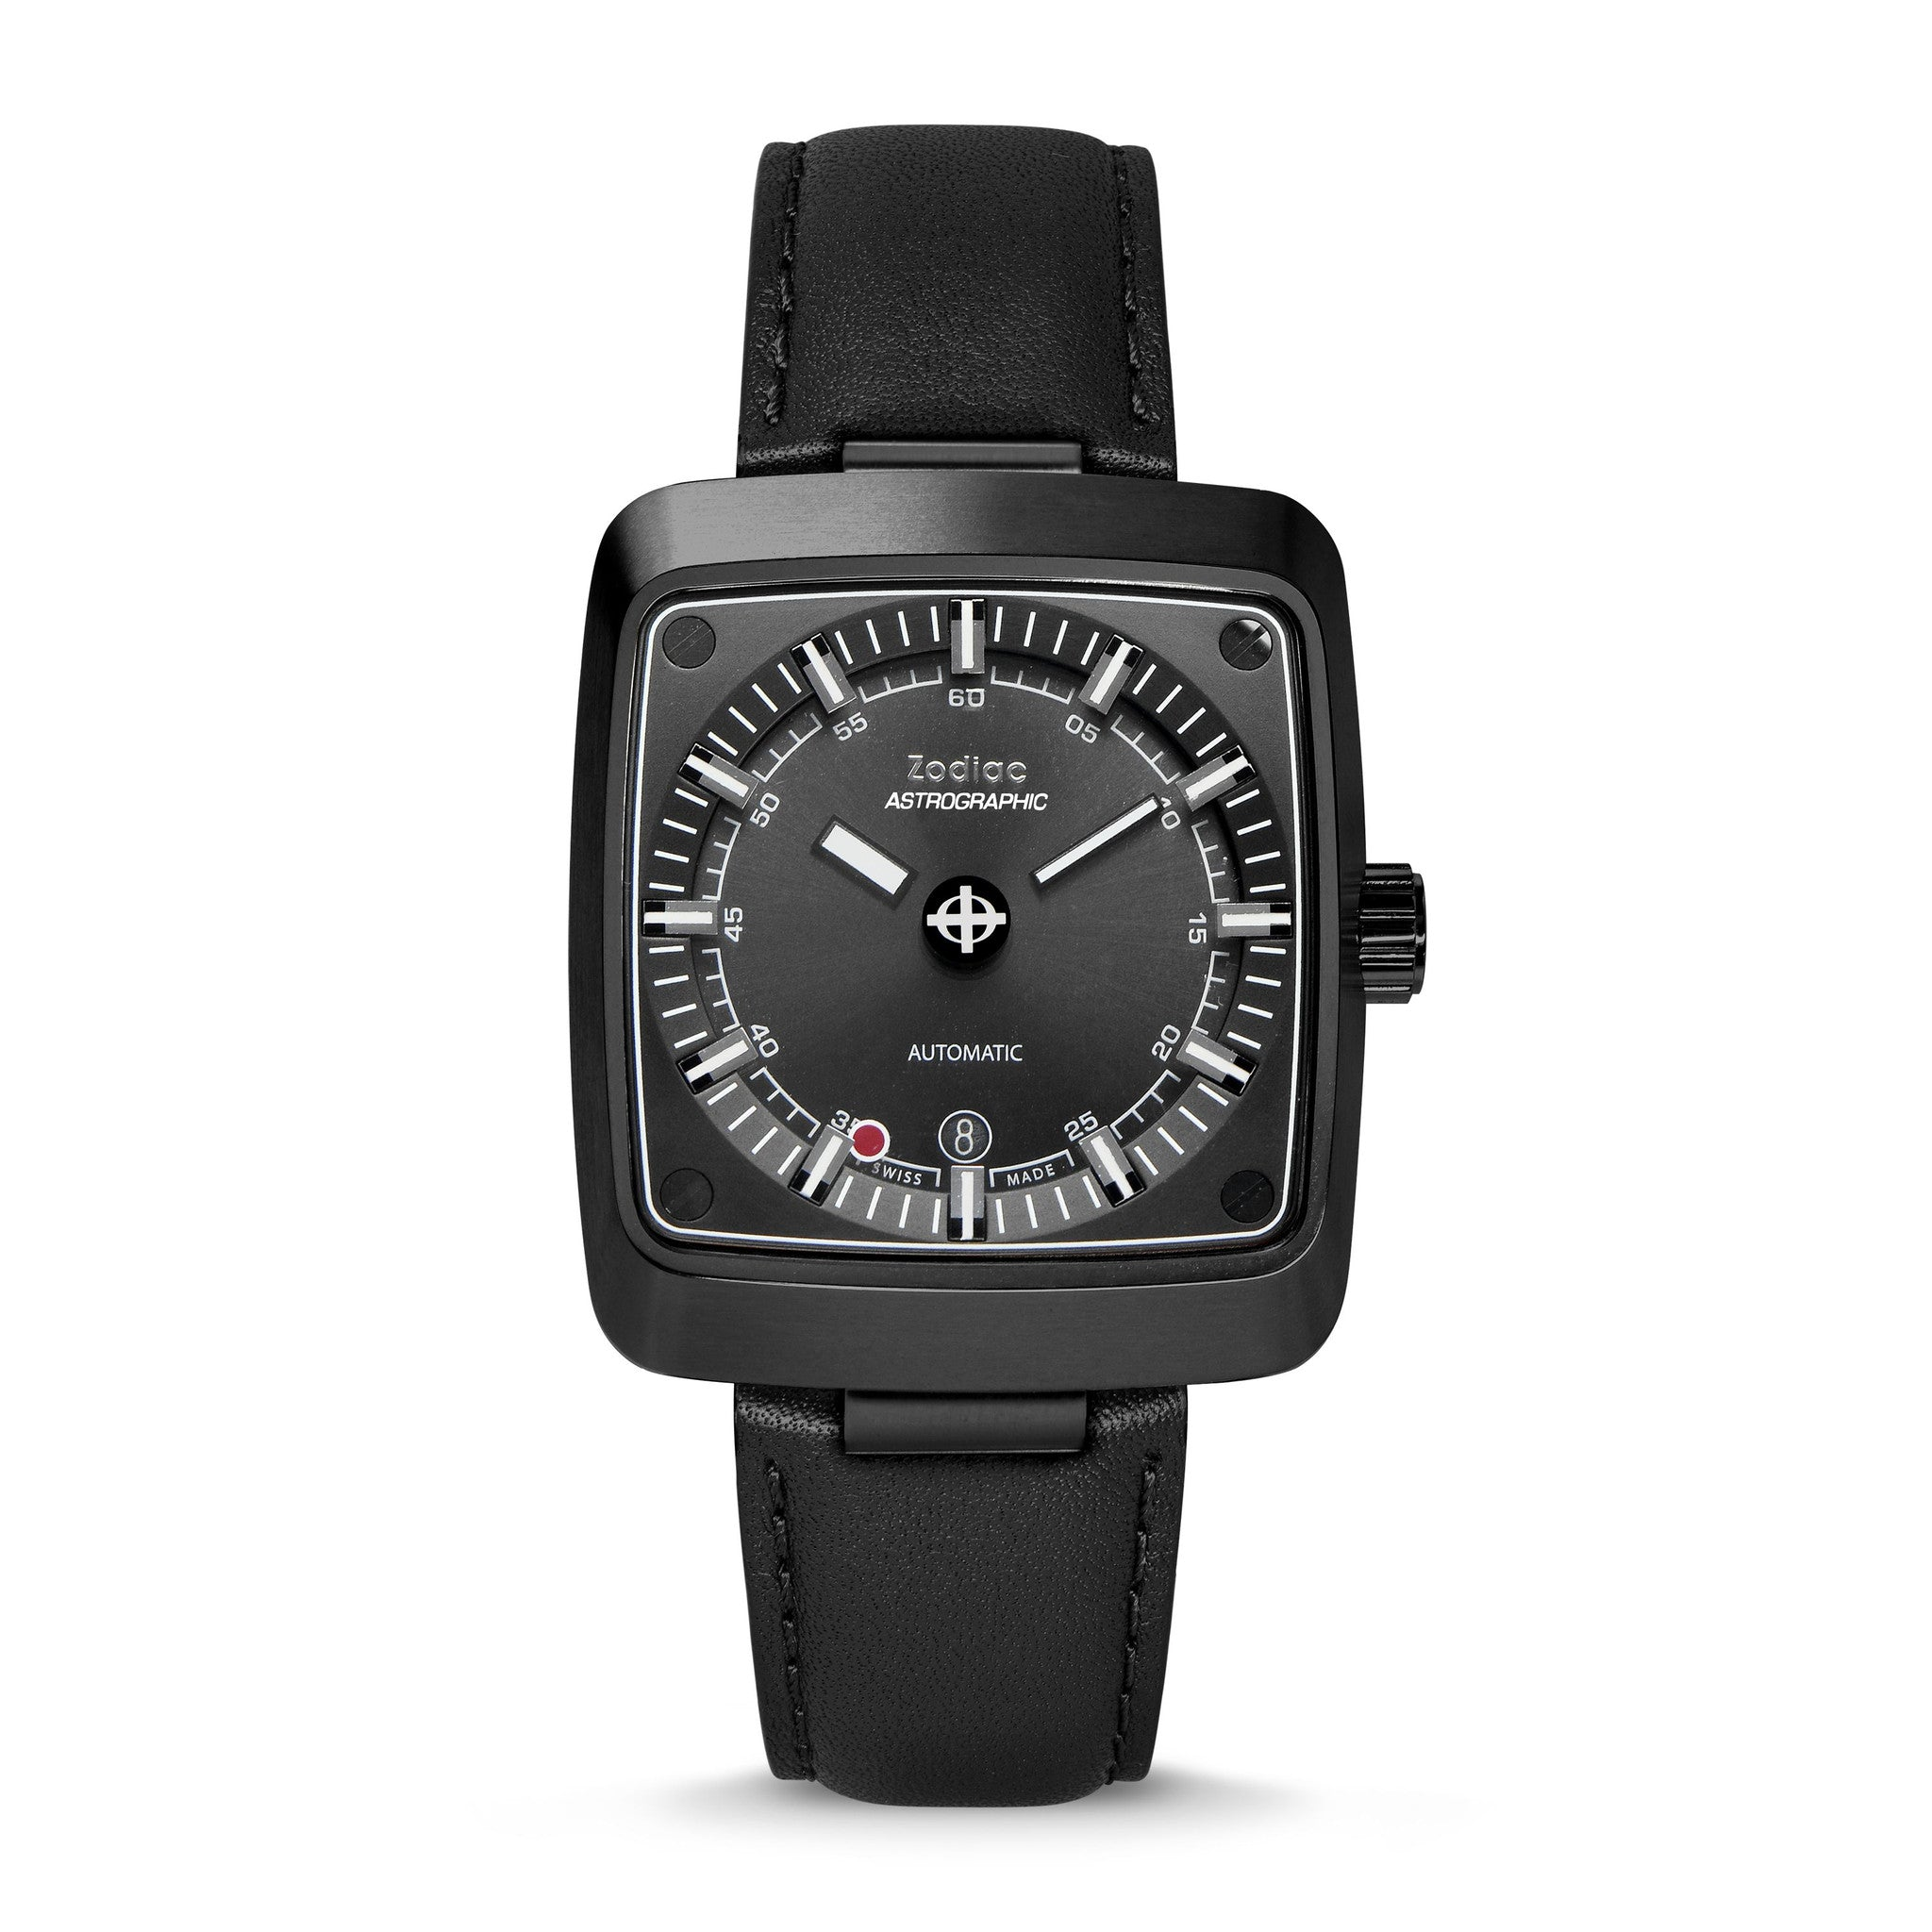 LIMITED EDITION ASTROGRAPHIC AUTOMATIC BLACK LEATHER WATCH